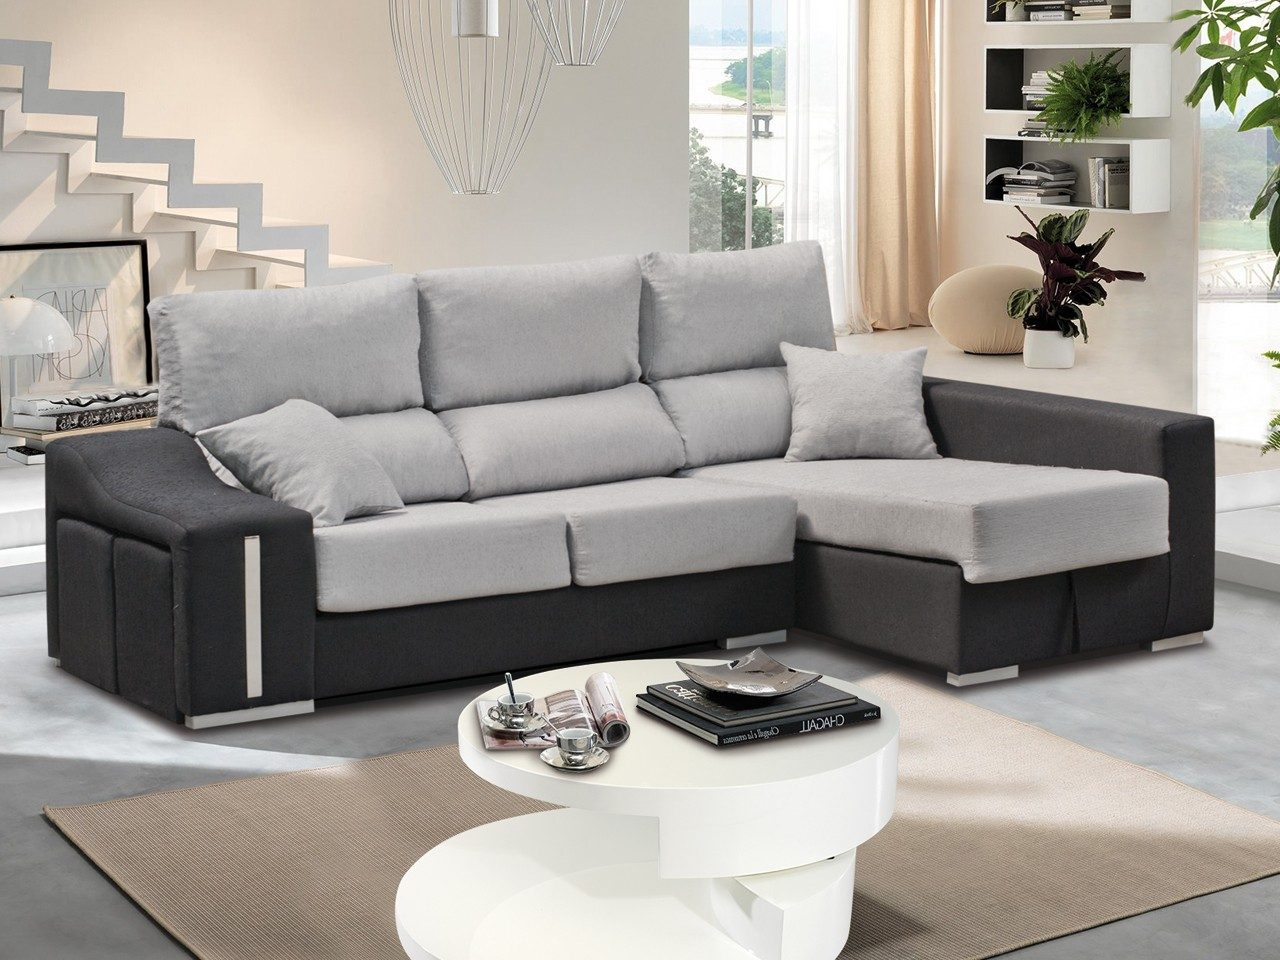 Sof s para la decoraci n de interiores en for Decoracion para sillones